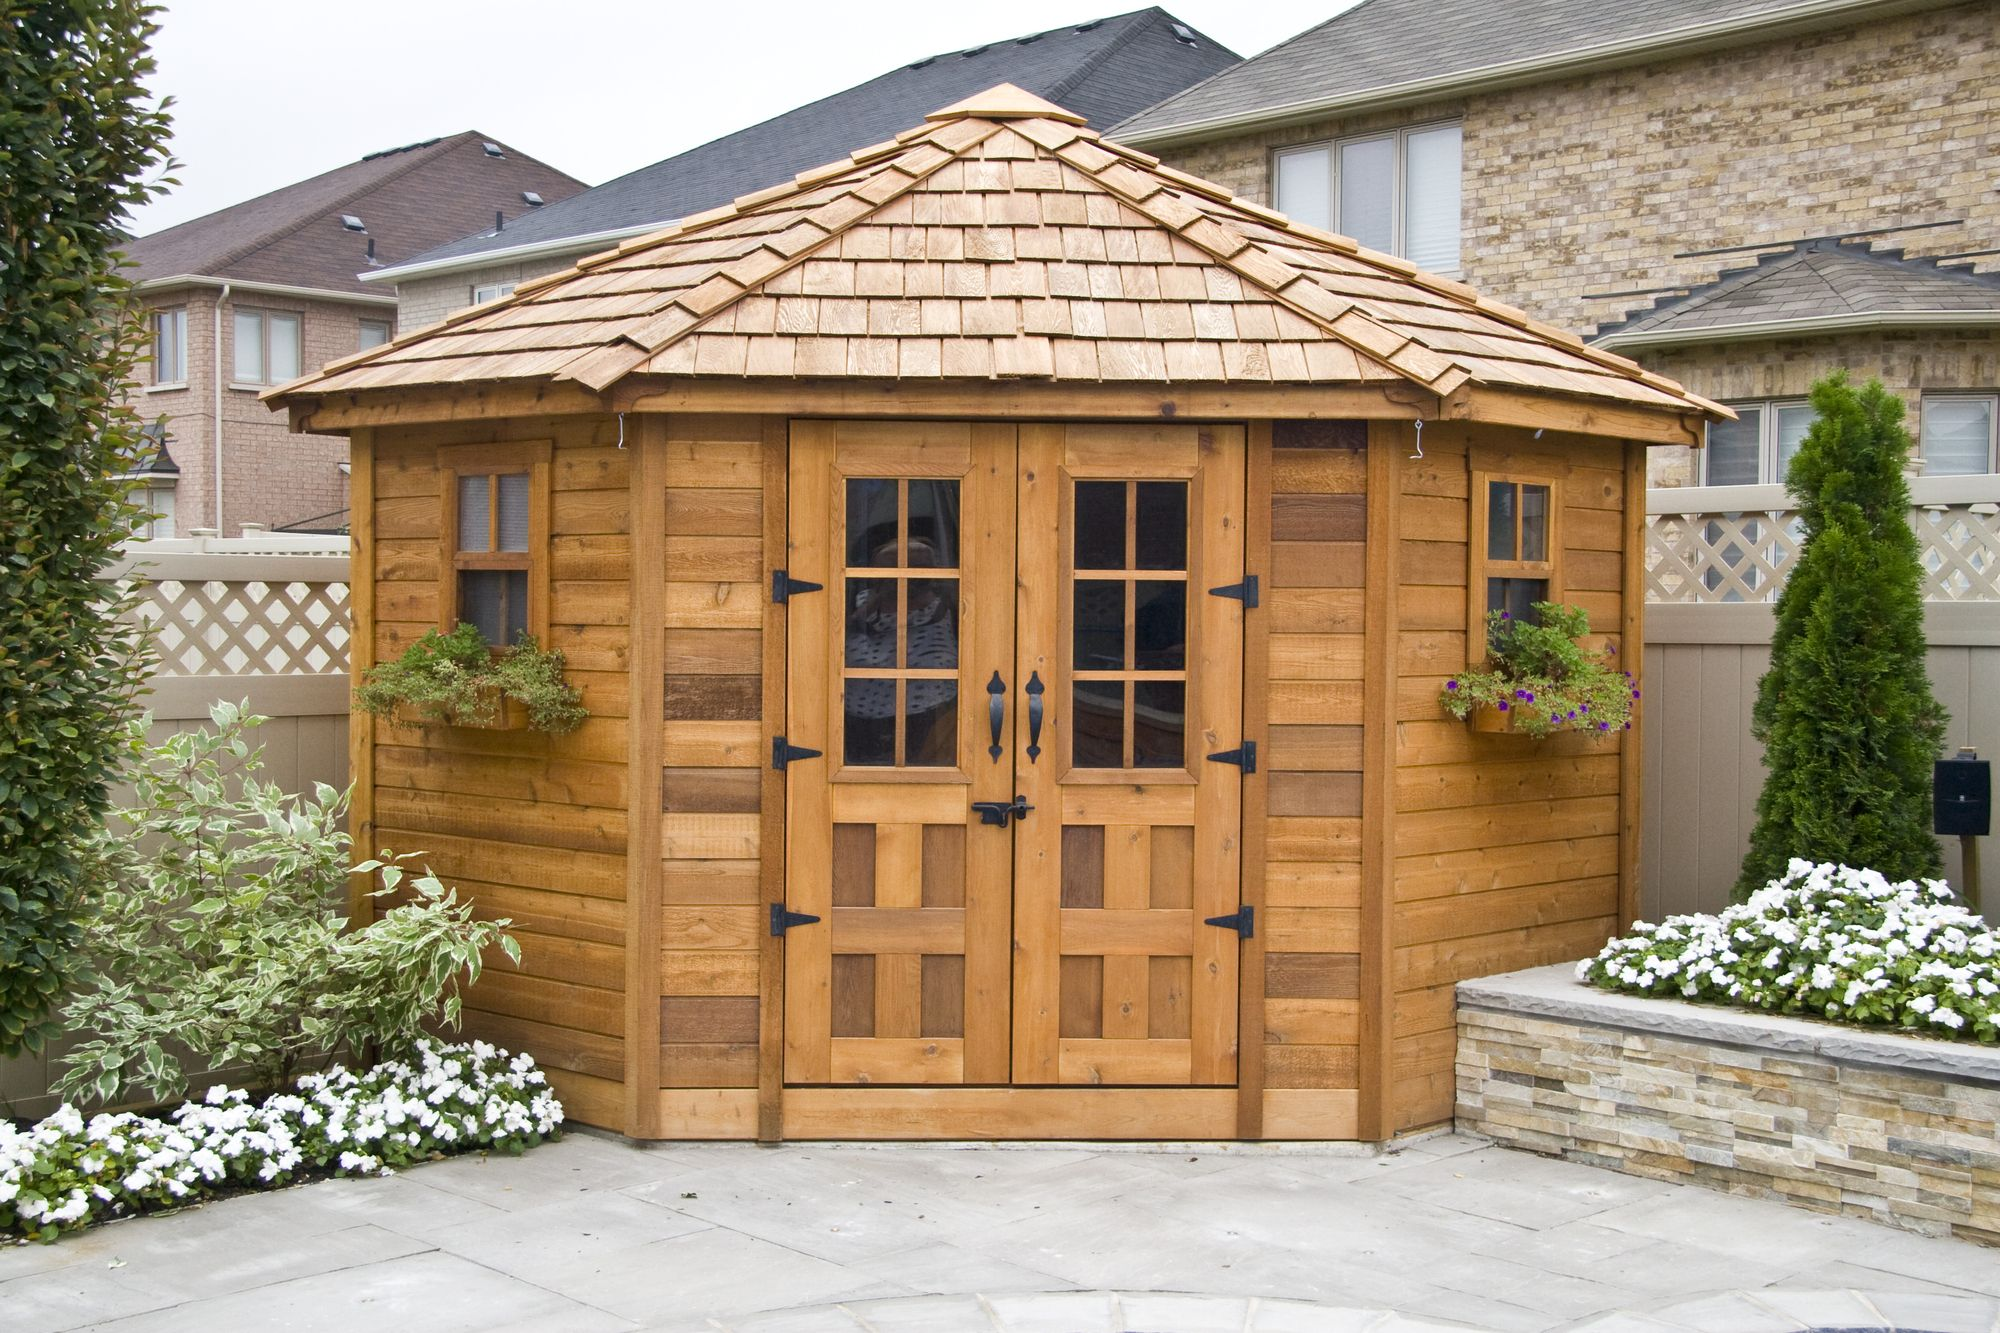 Outdoor Living Today Penthouse 9 Ft W X 9 Ft D Solid Wood Storage Shed Outdoor Sheds Corner Sheds Penthouse Garden